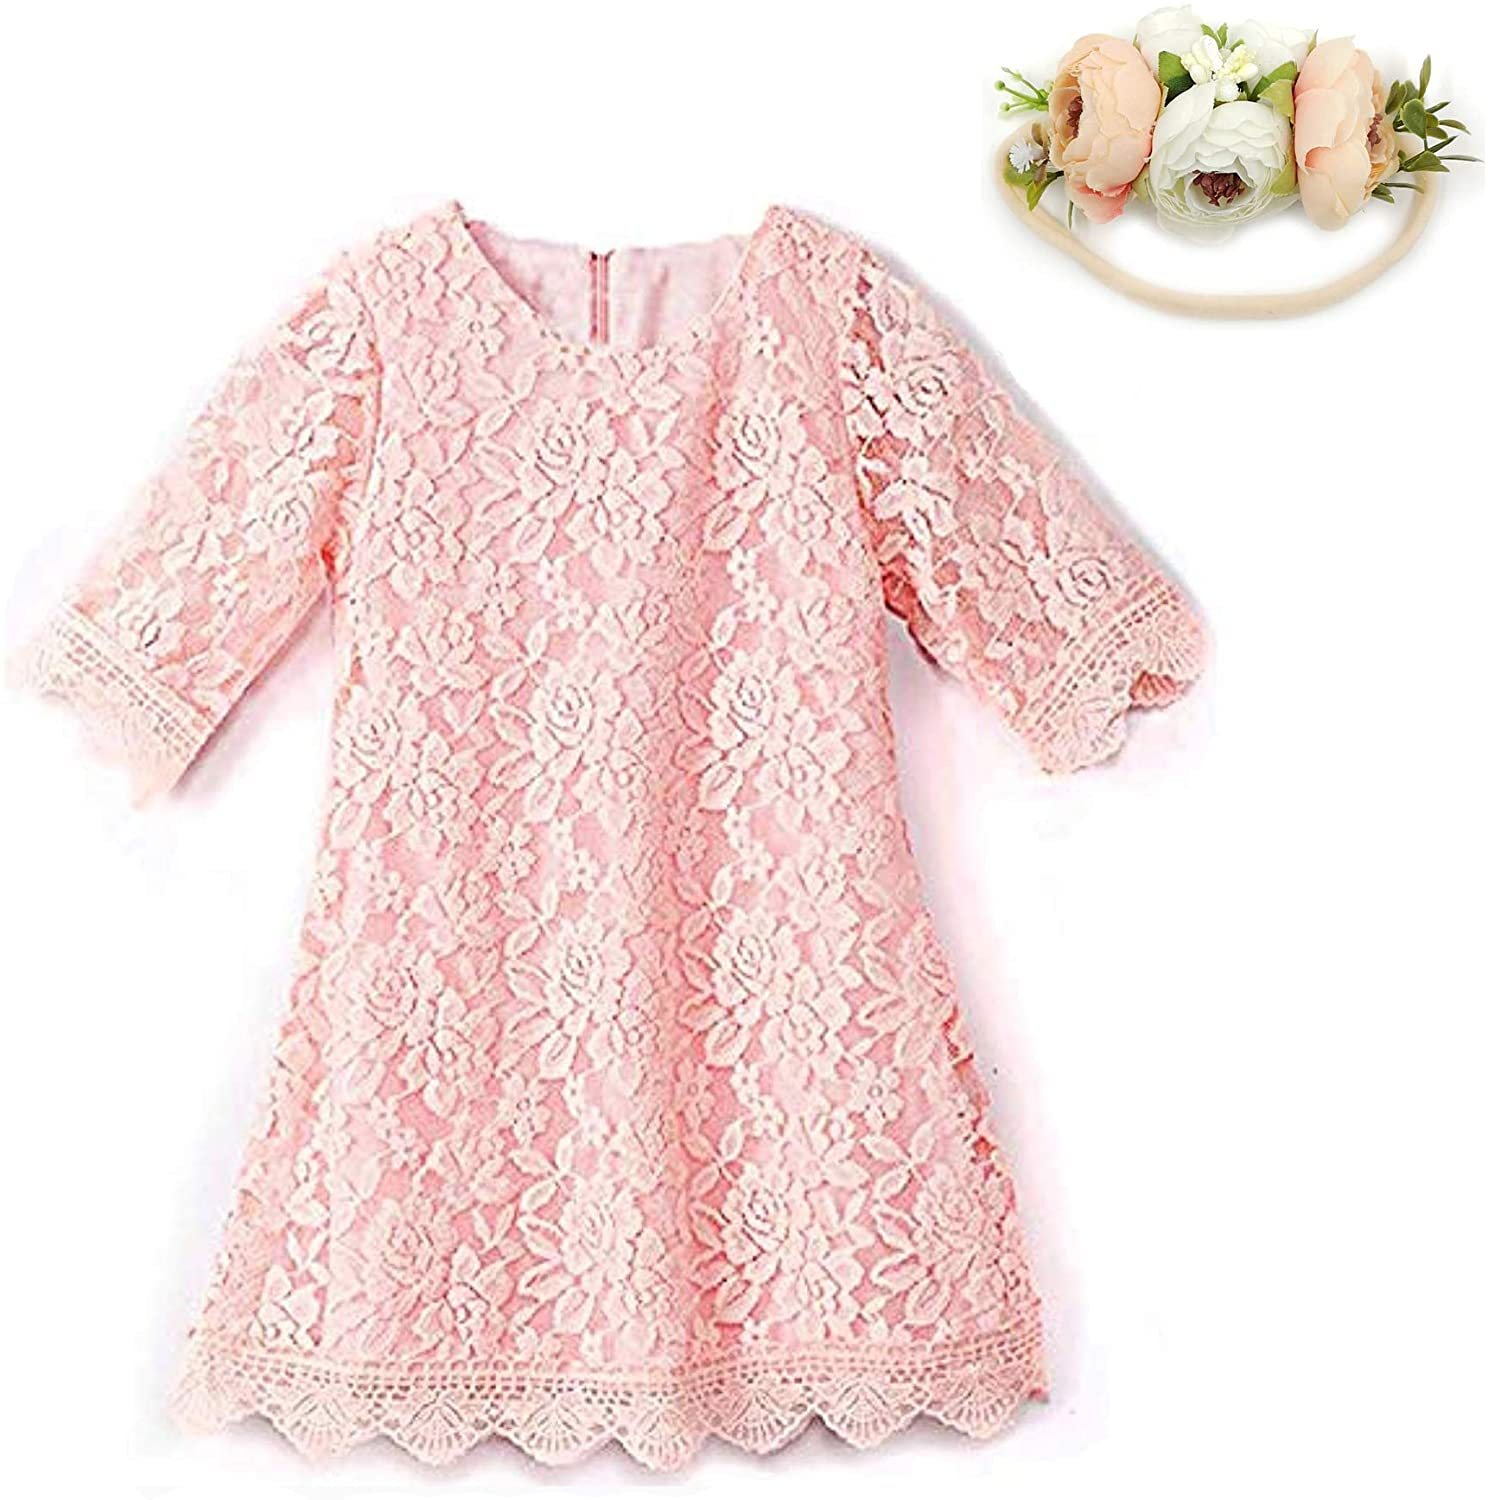 Toddler Girls Lace Flower Dress 3/4 Sleeve Casual Party Wedding Dresses with Headband